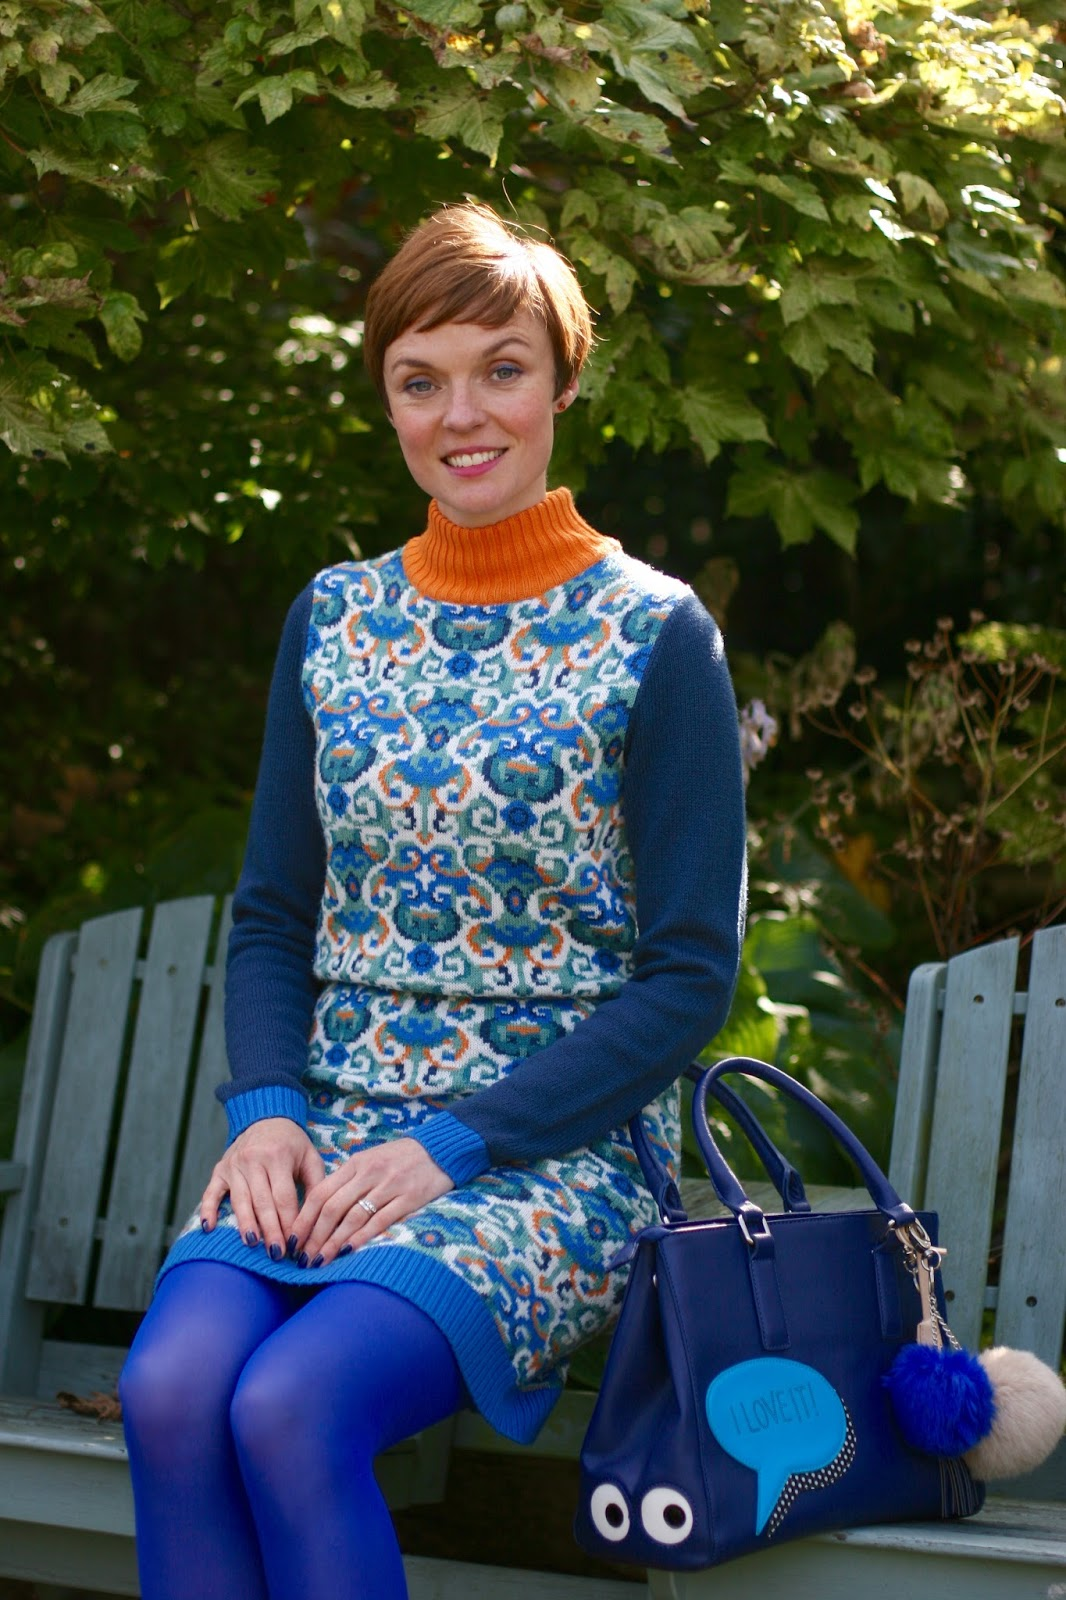 Wearing a Jumper dress with colour | Fake fabulous